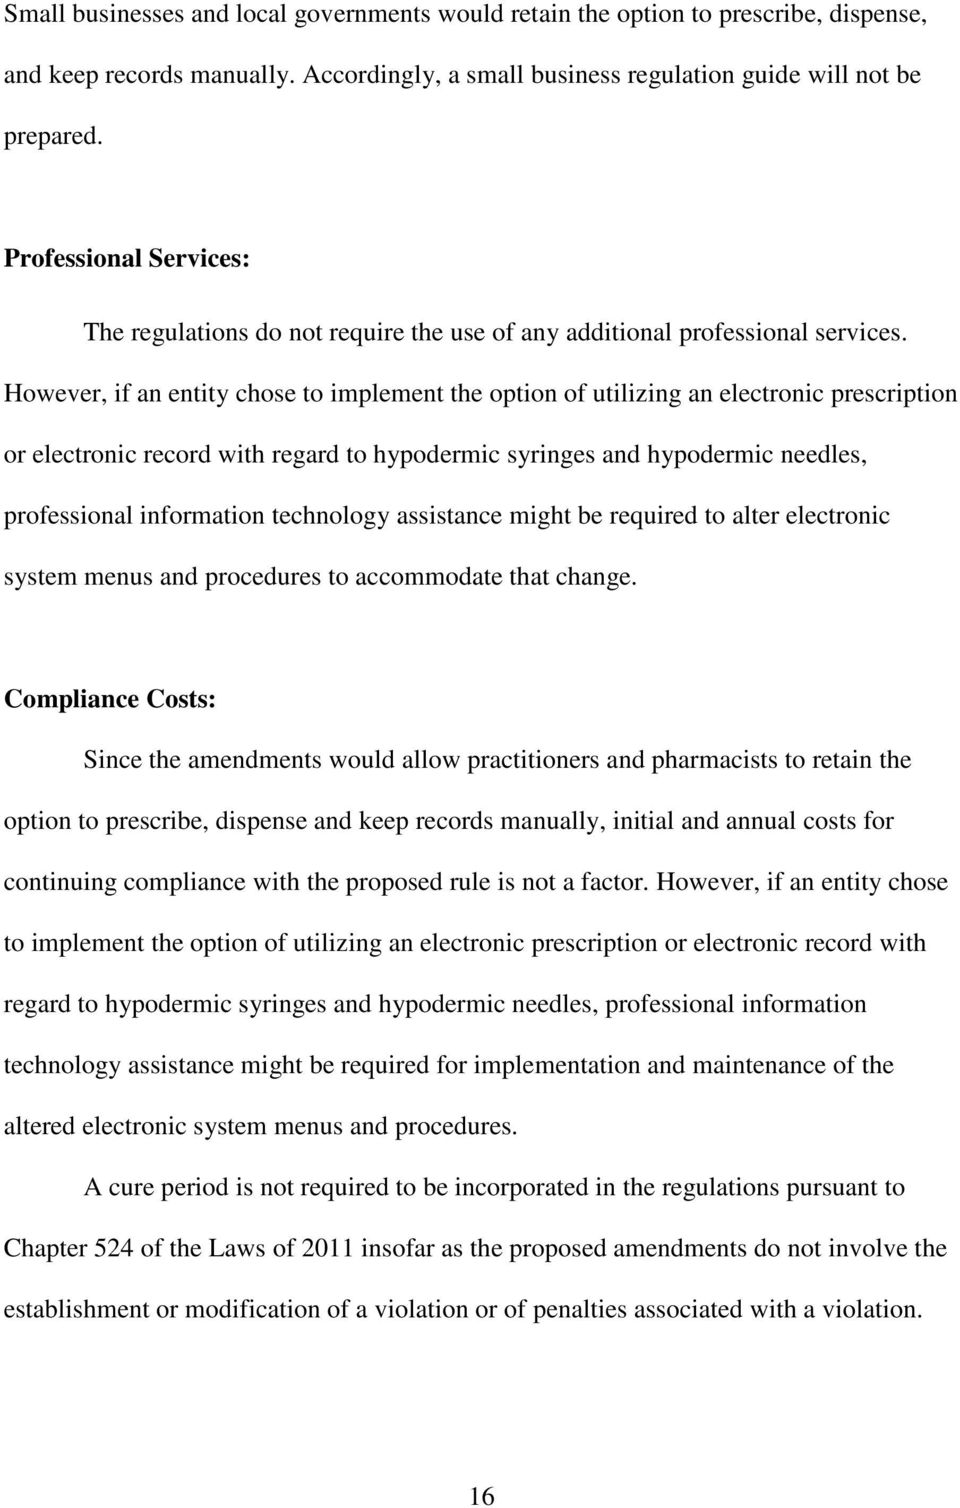 However, if an entity chose to implement the option of utilizing an electronic prescription or electronic record with regard to hypodermic syringes and hypodermic needles, professional information